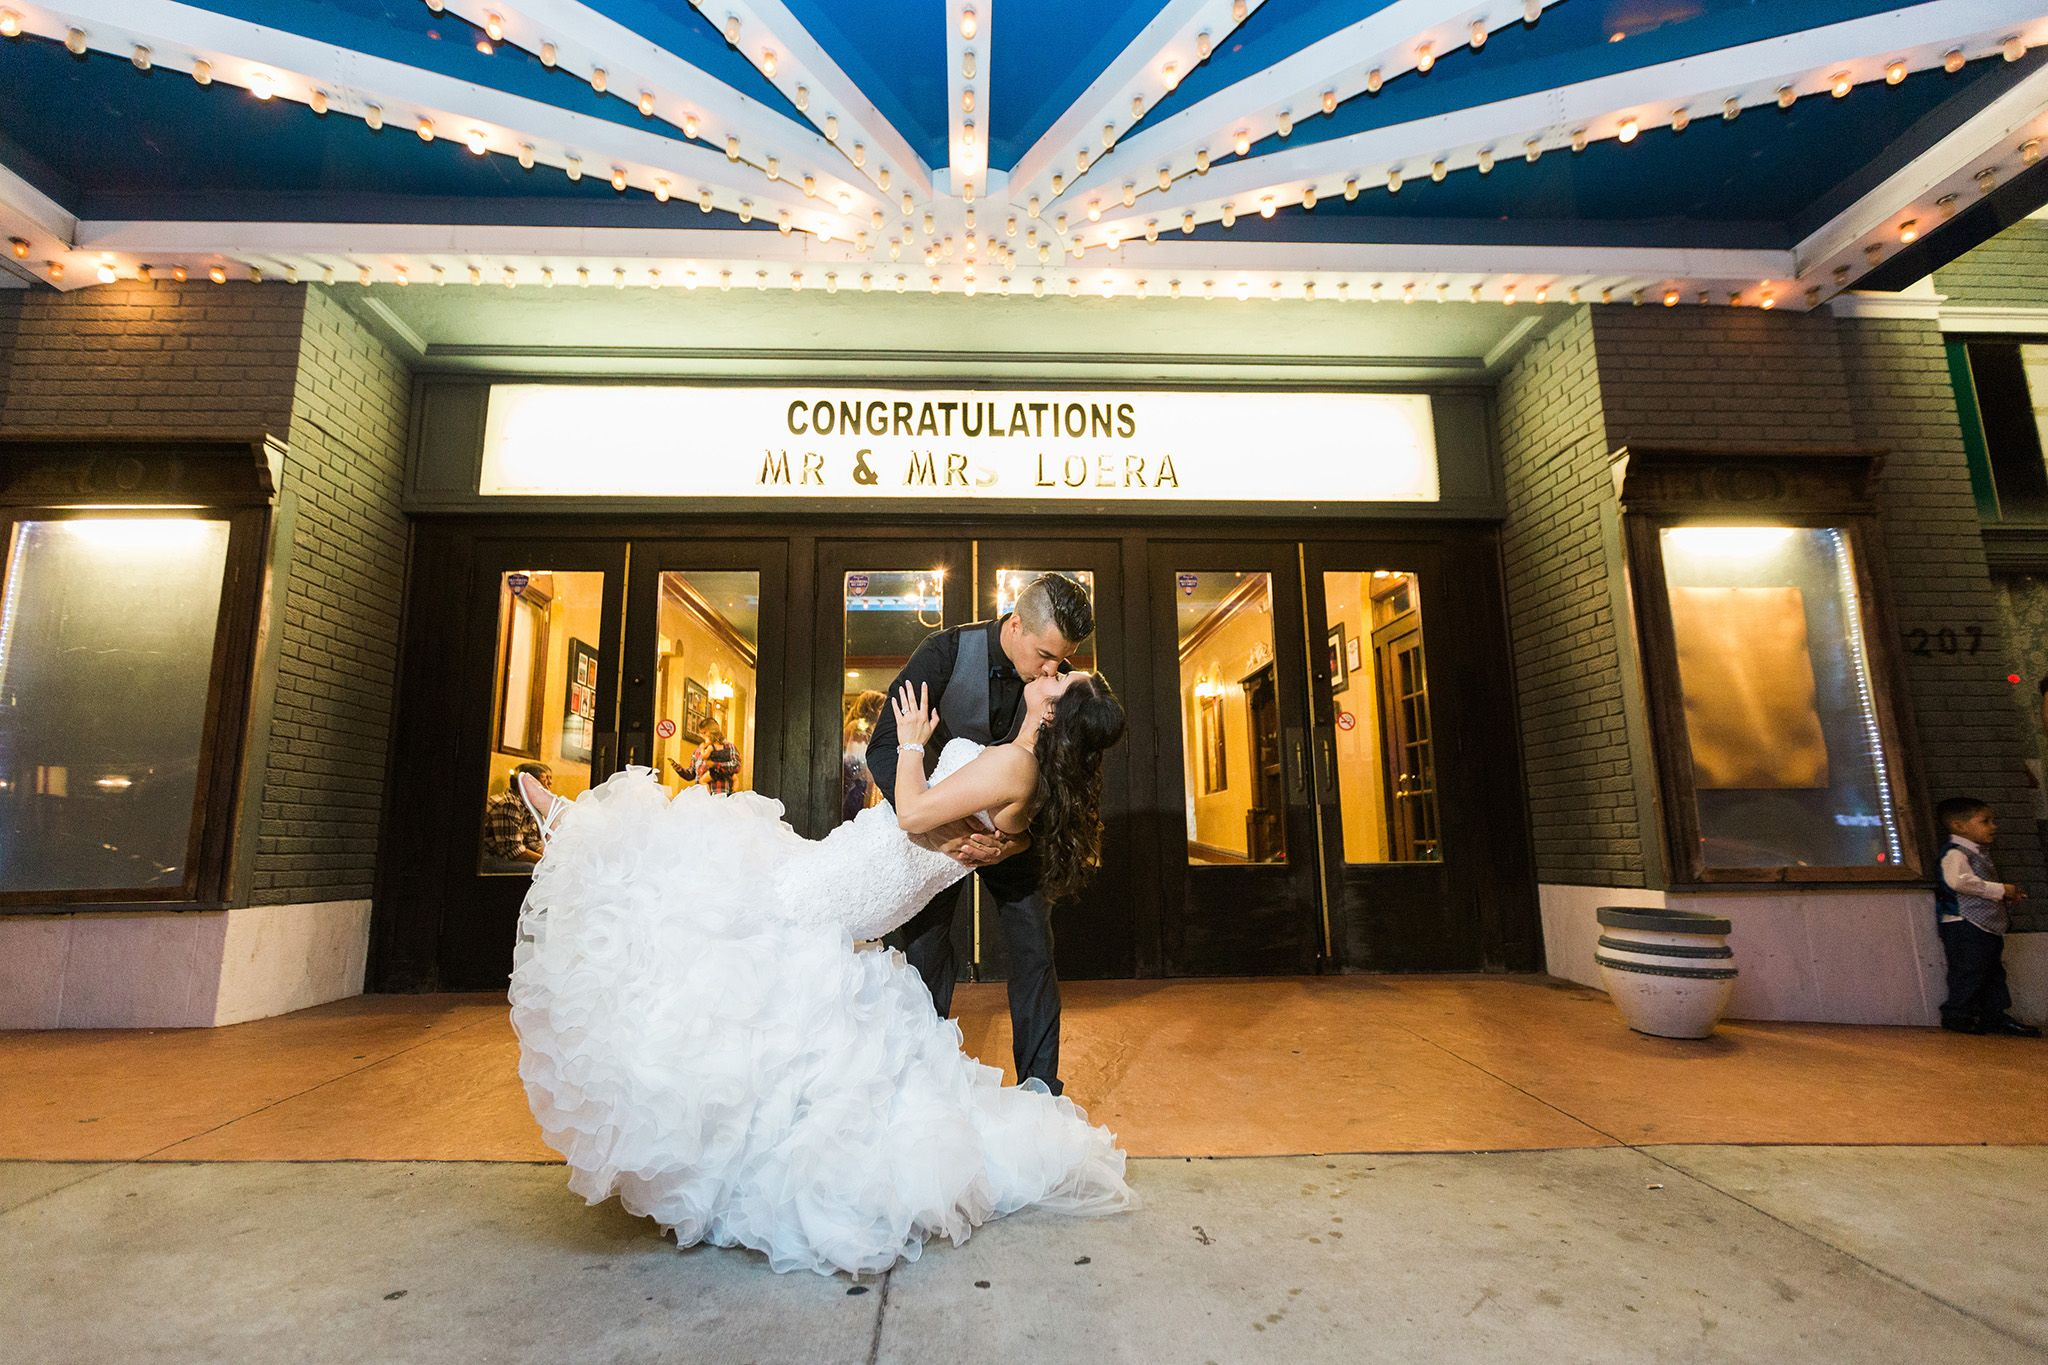 Crown Uptown Theatre Wedding Reception Venues Venues Wedding Dressses